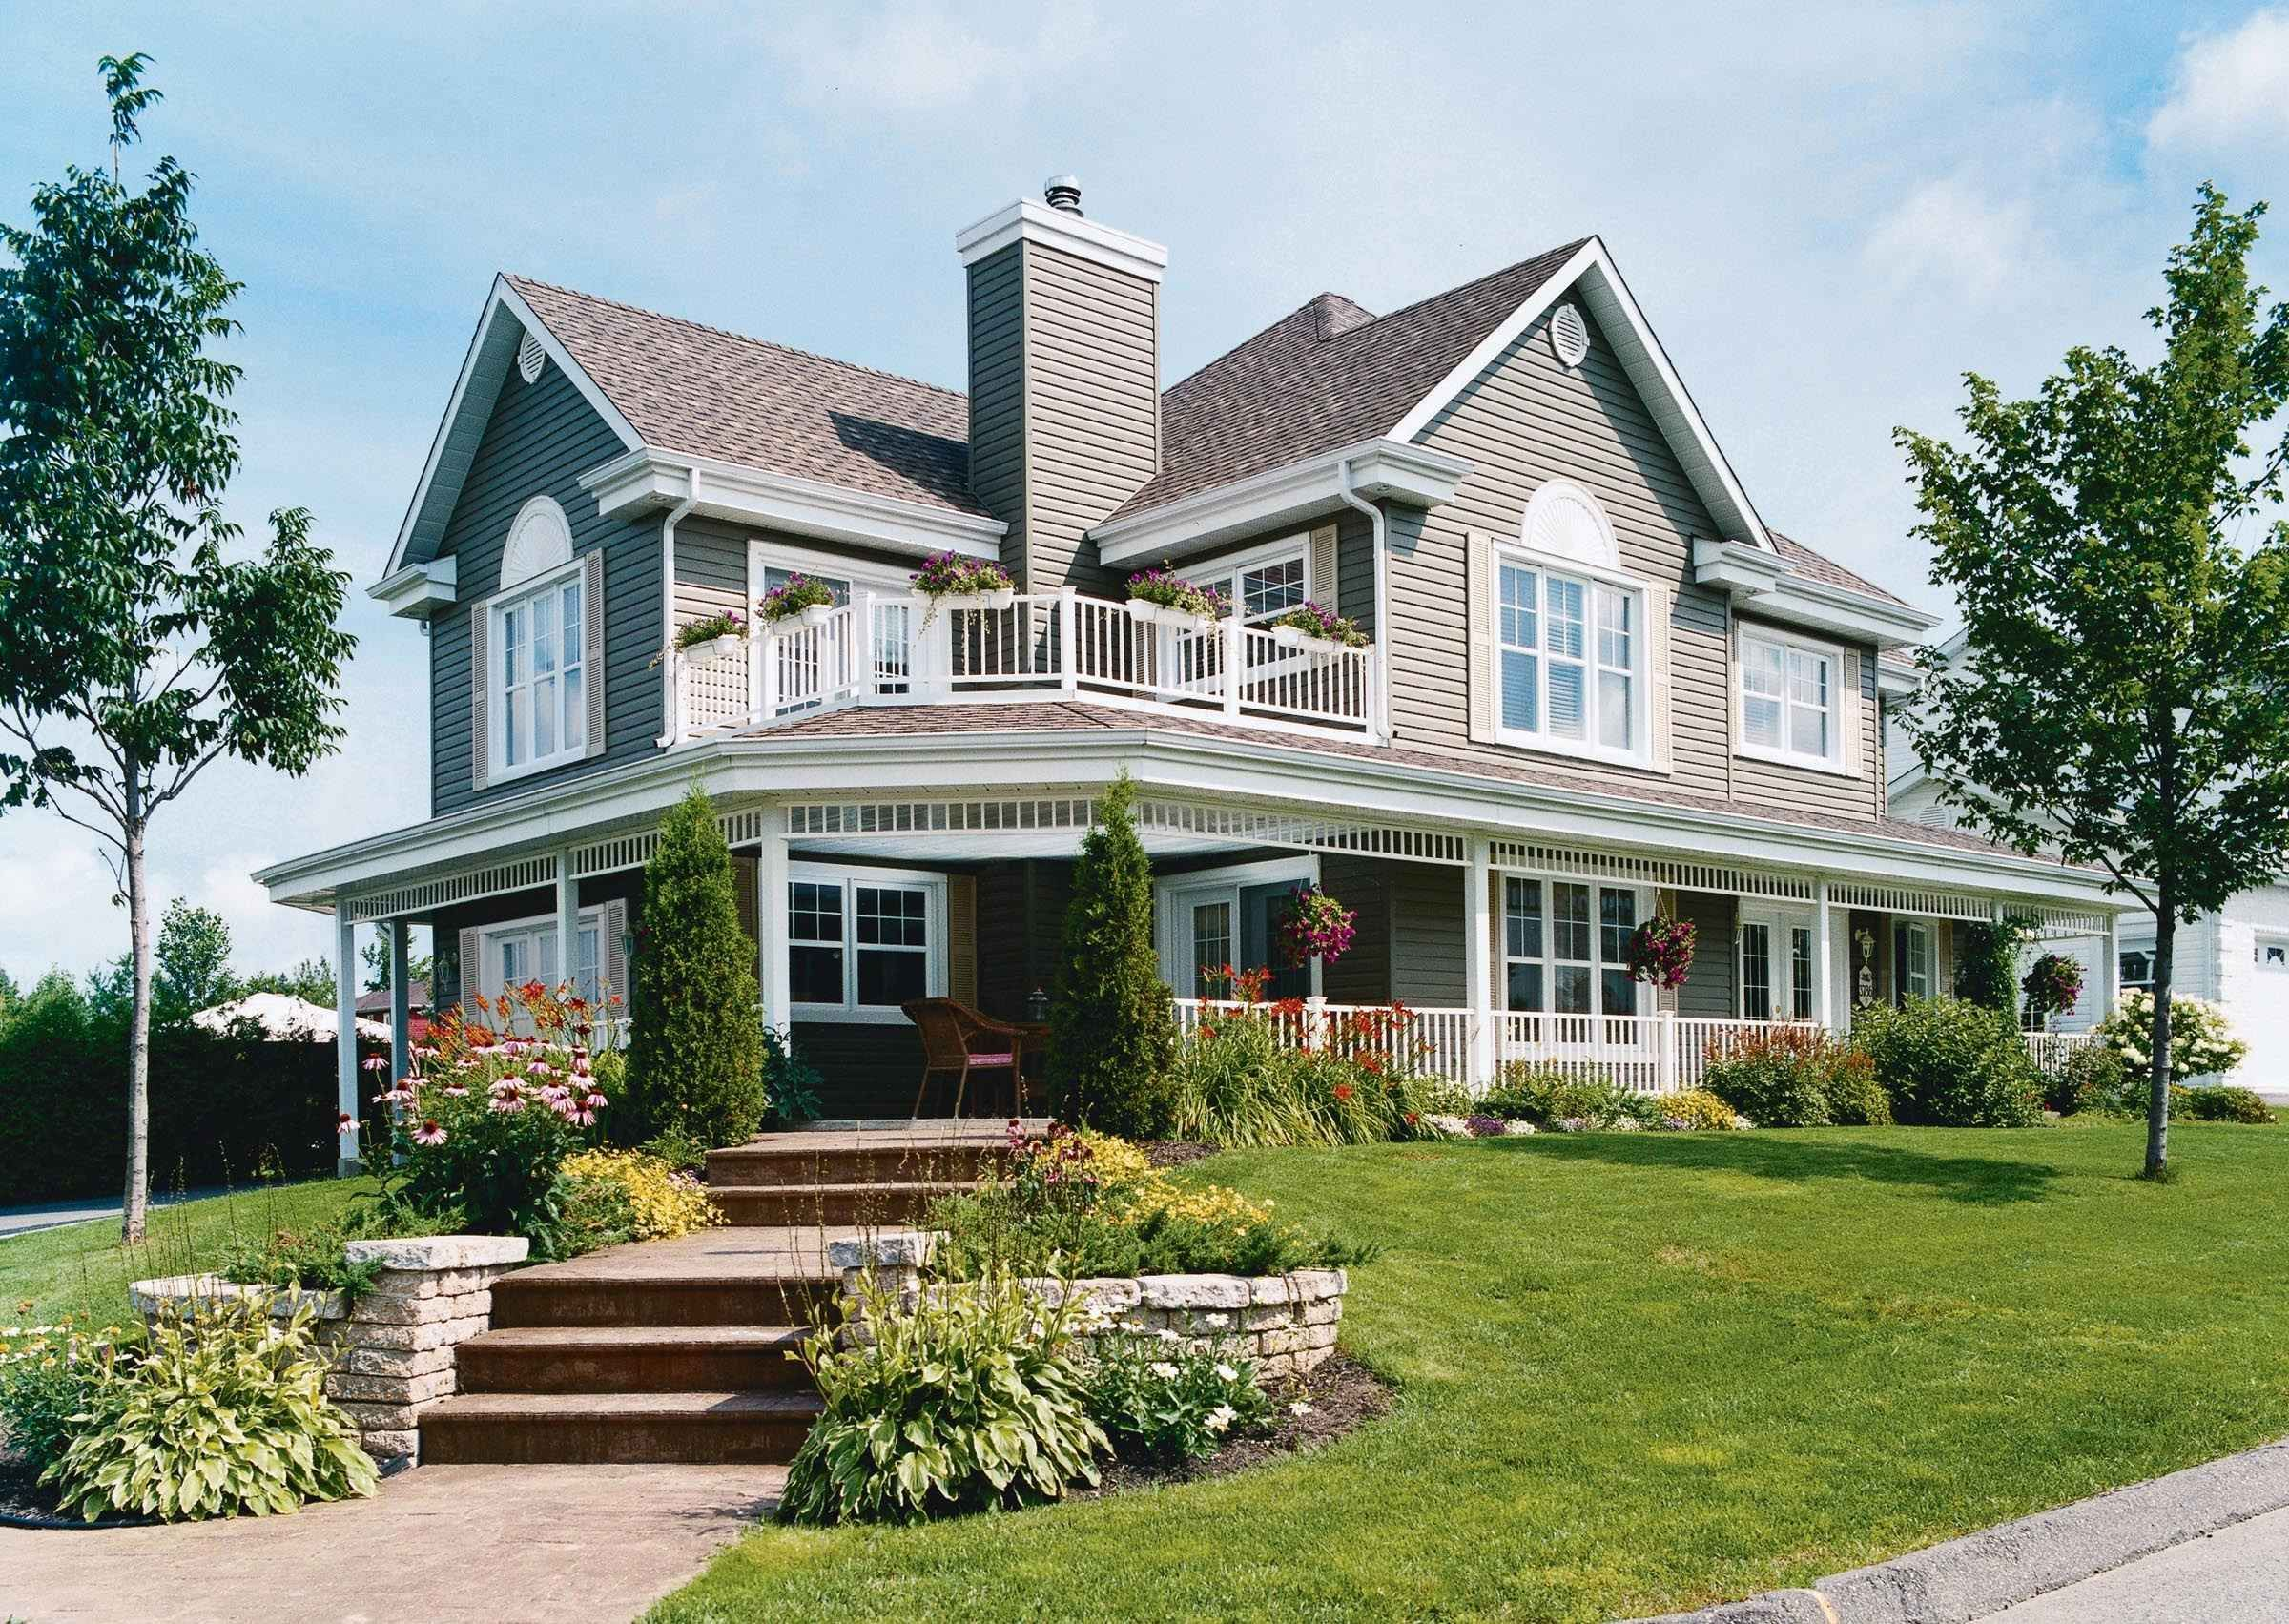 Classic New England House Plans Also Saltbox House Plans Best Roof Awesome Small Home Colonia Country Style House Plans Victorian House Plans Porch House Plans